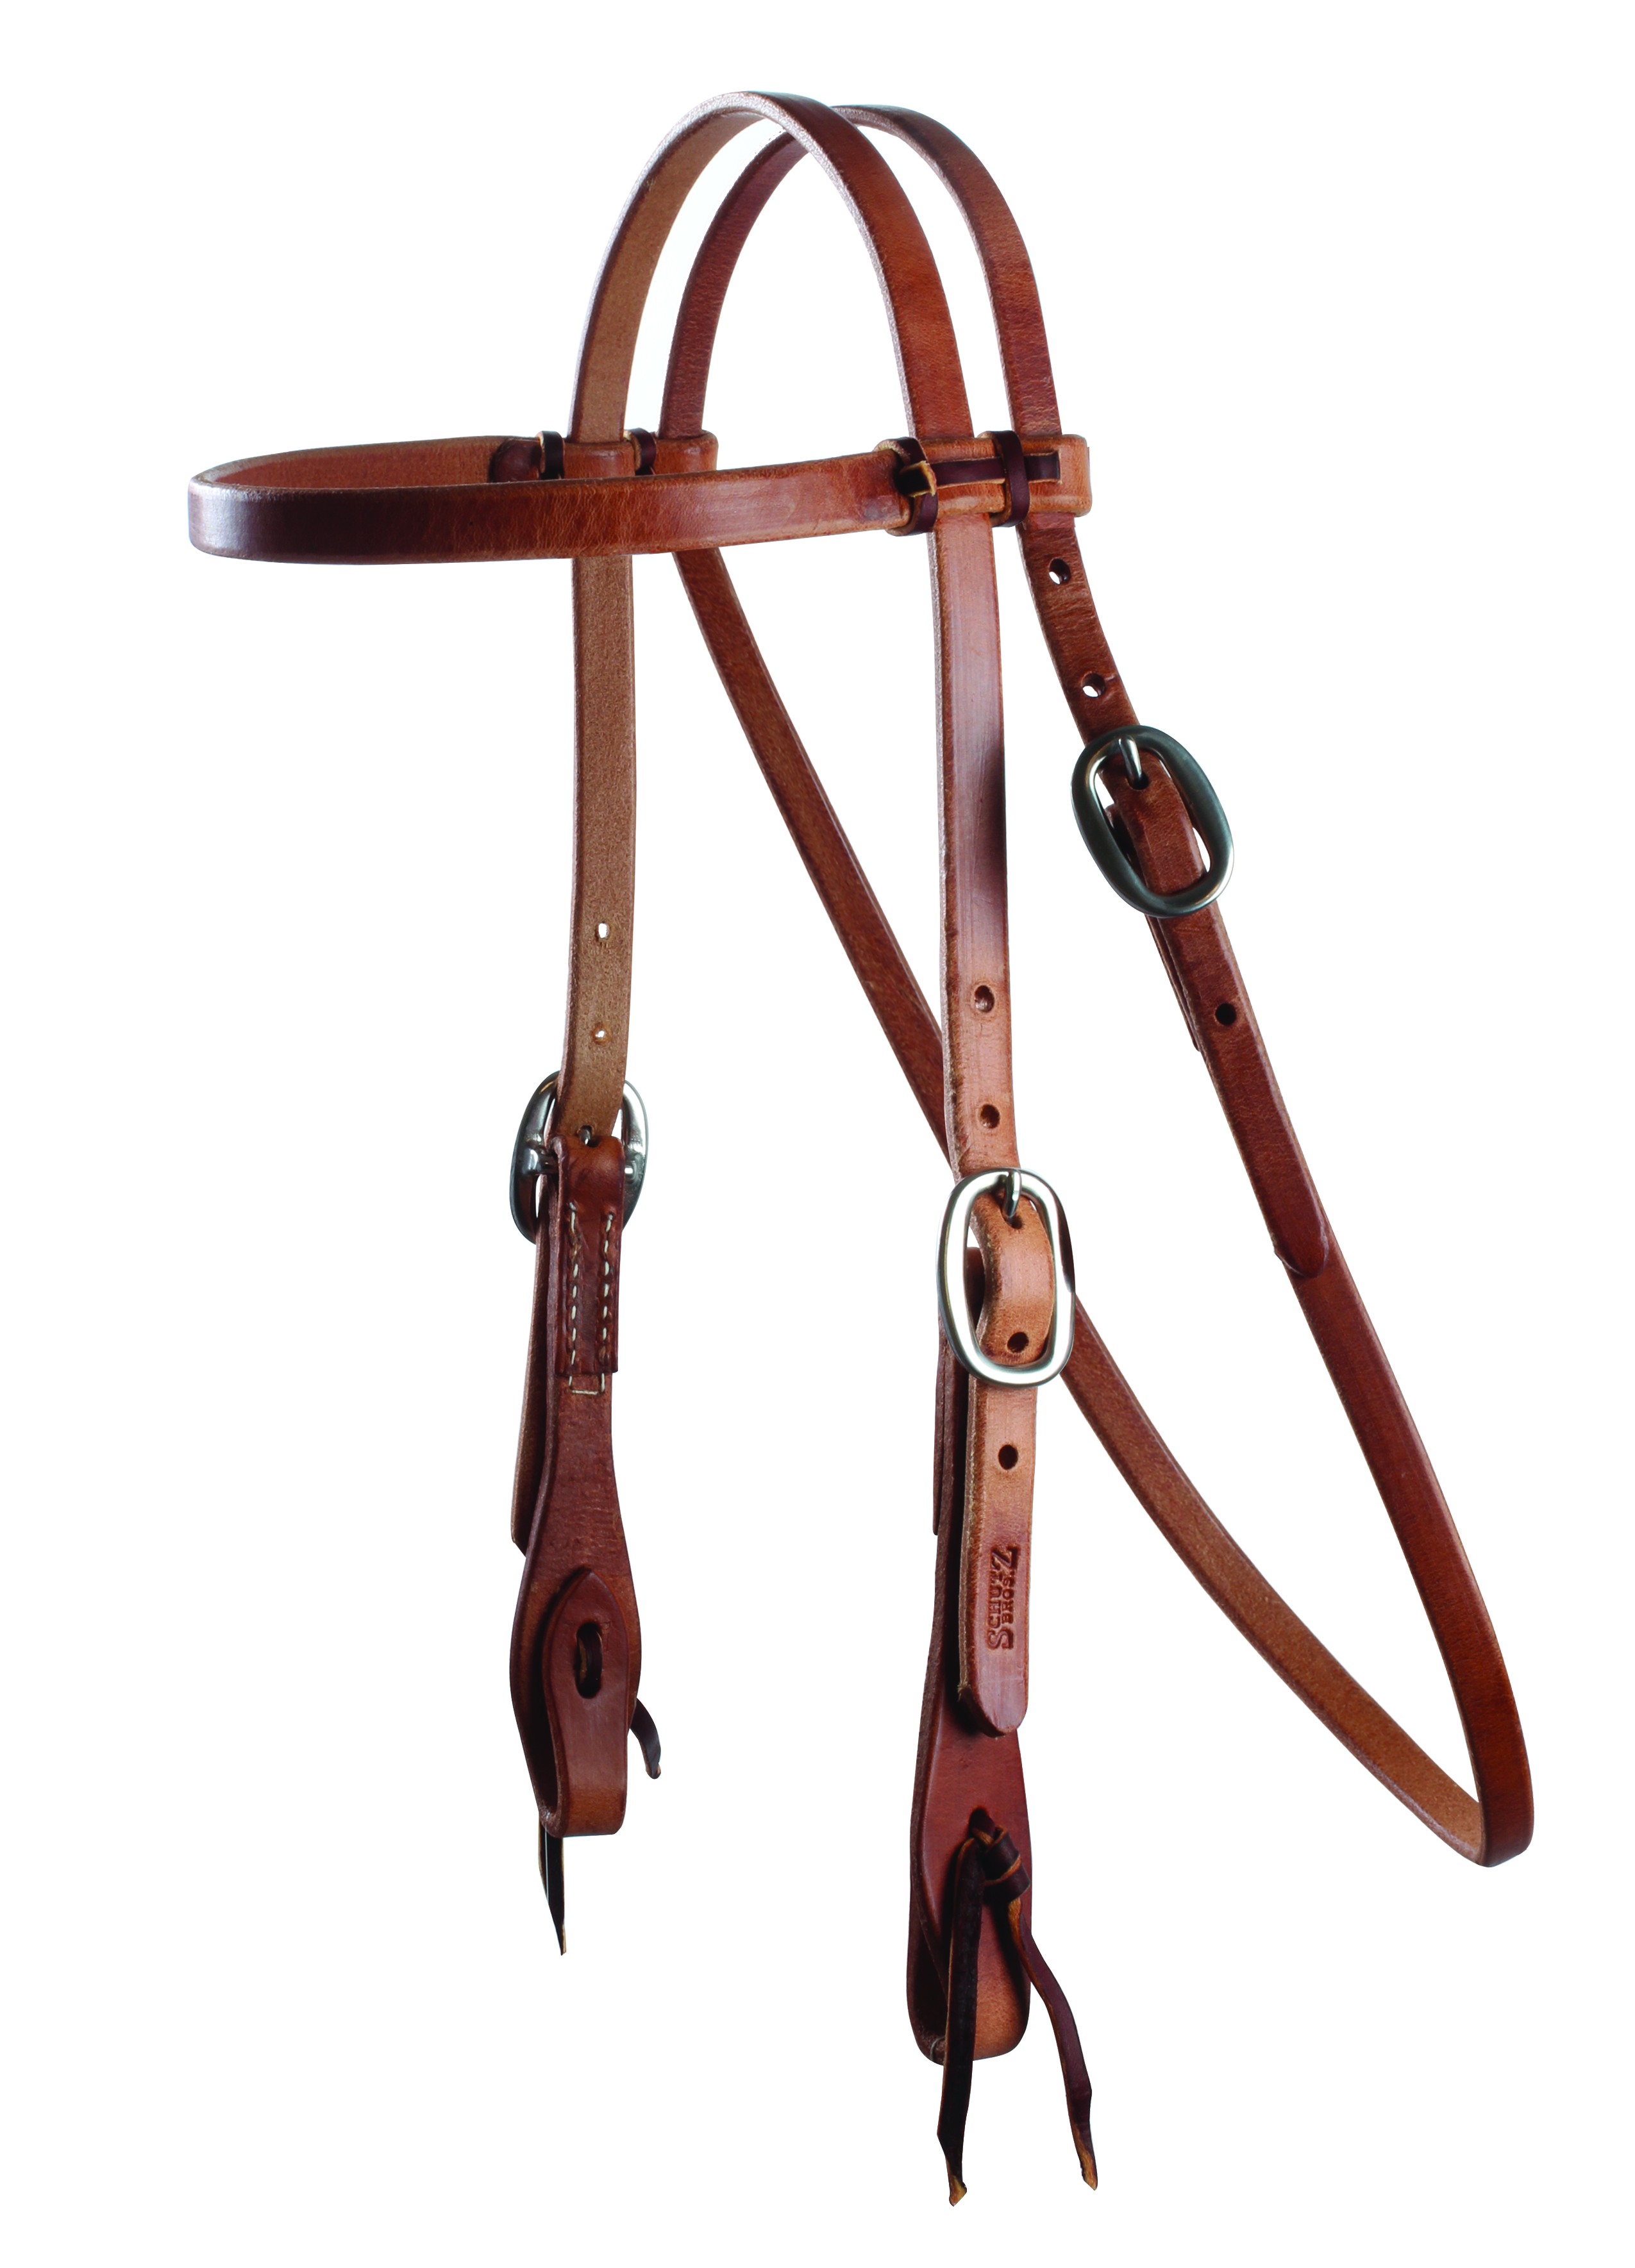 Schutz Brothers Headstall with browband and ties